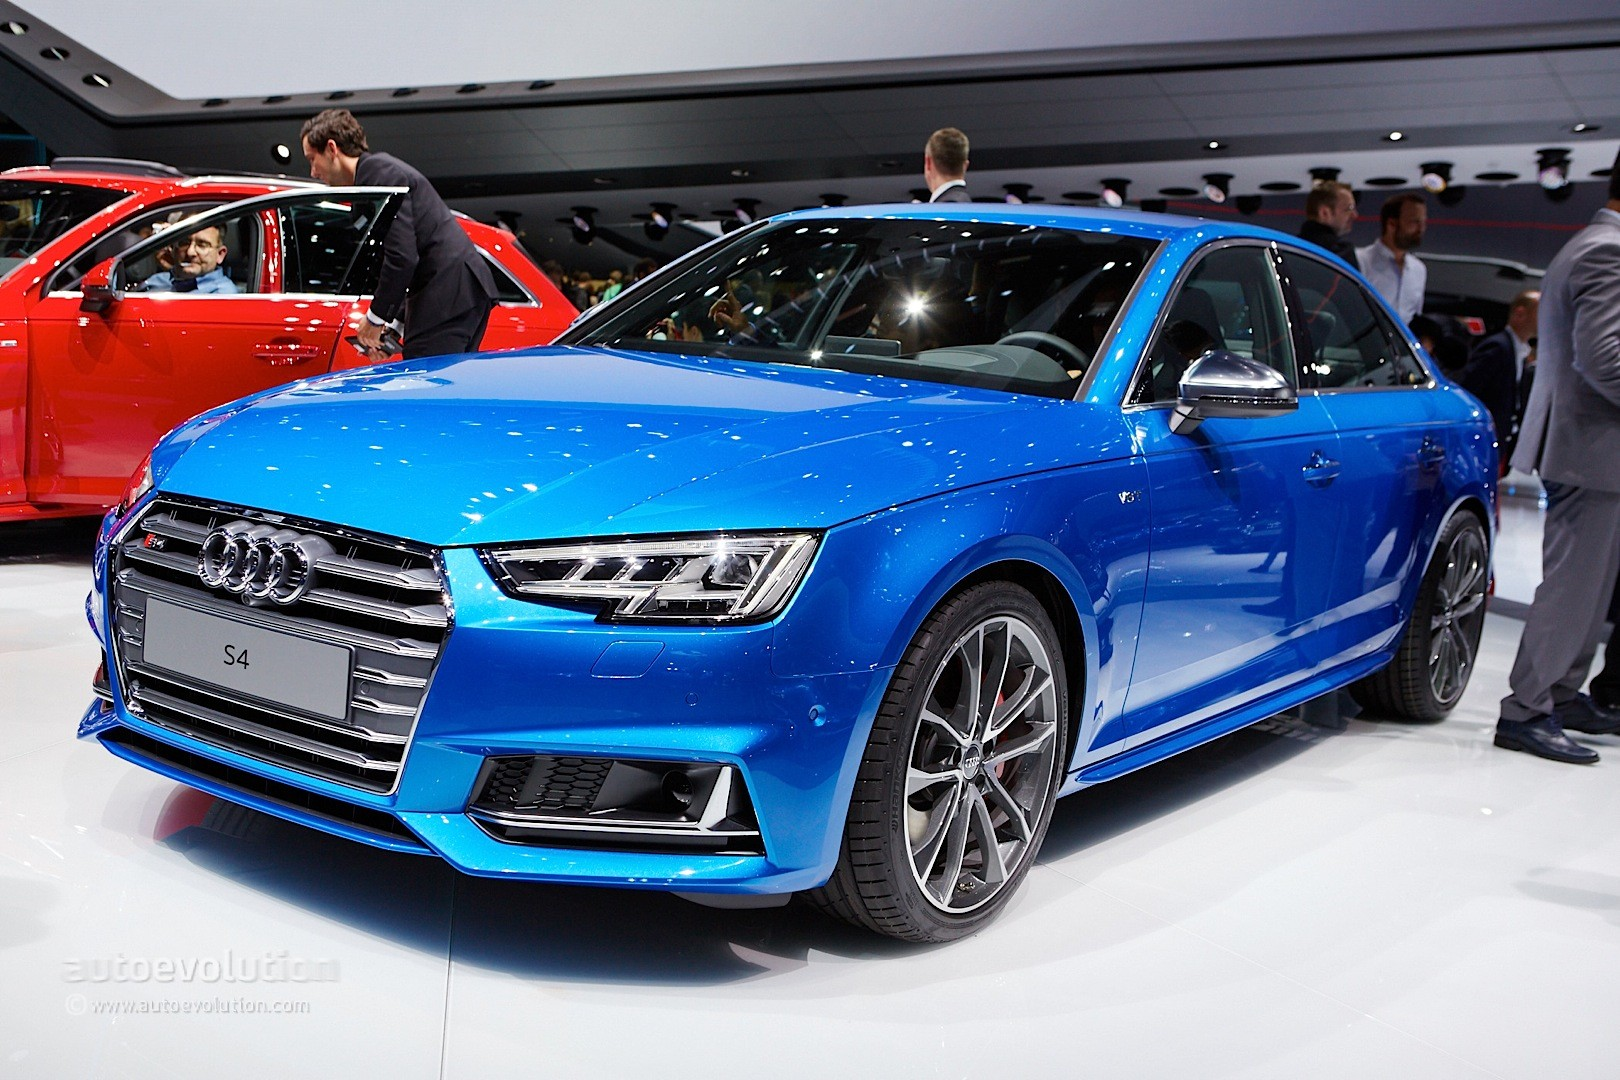 2016 Audi S4 Sedan Live Photos From Frankfurt Iaa